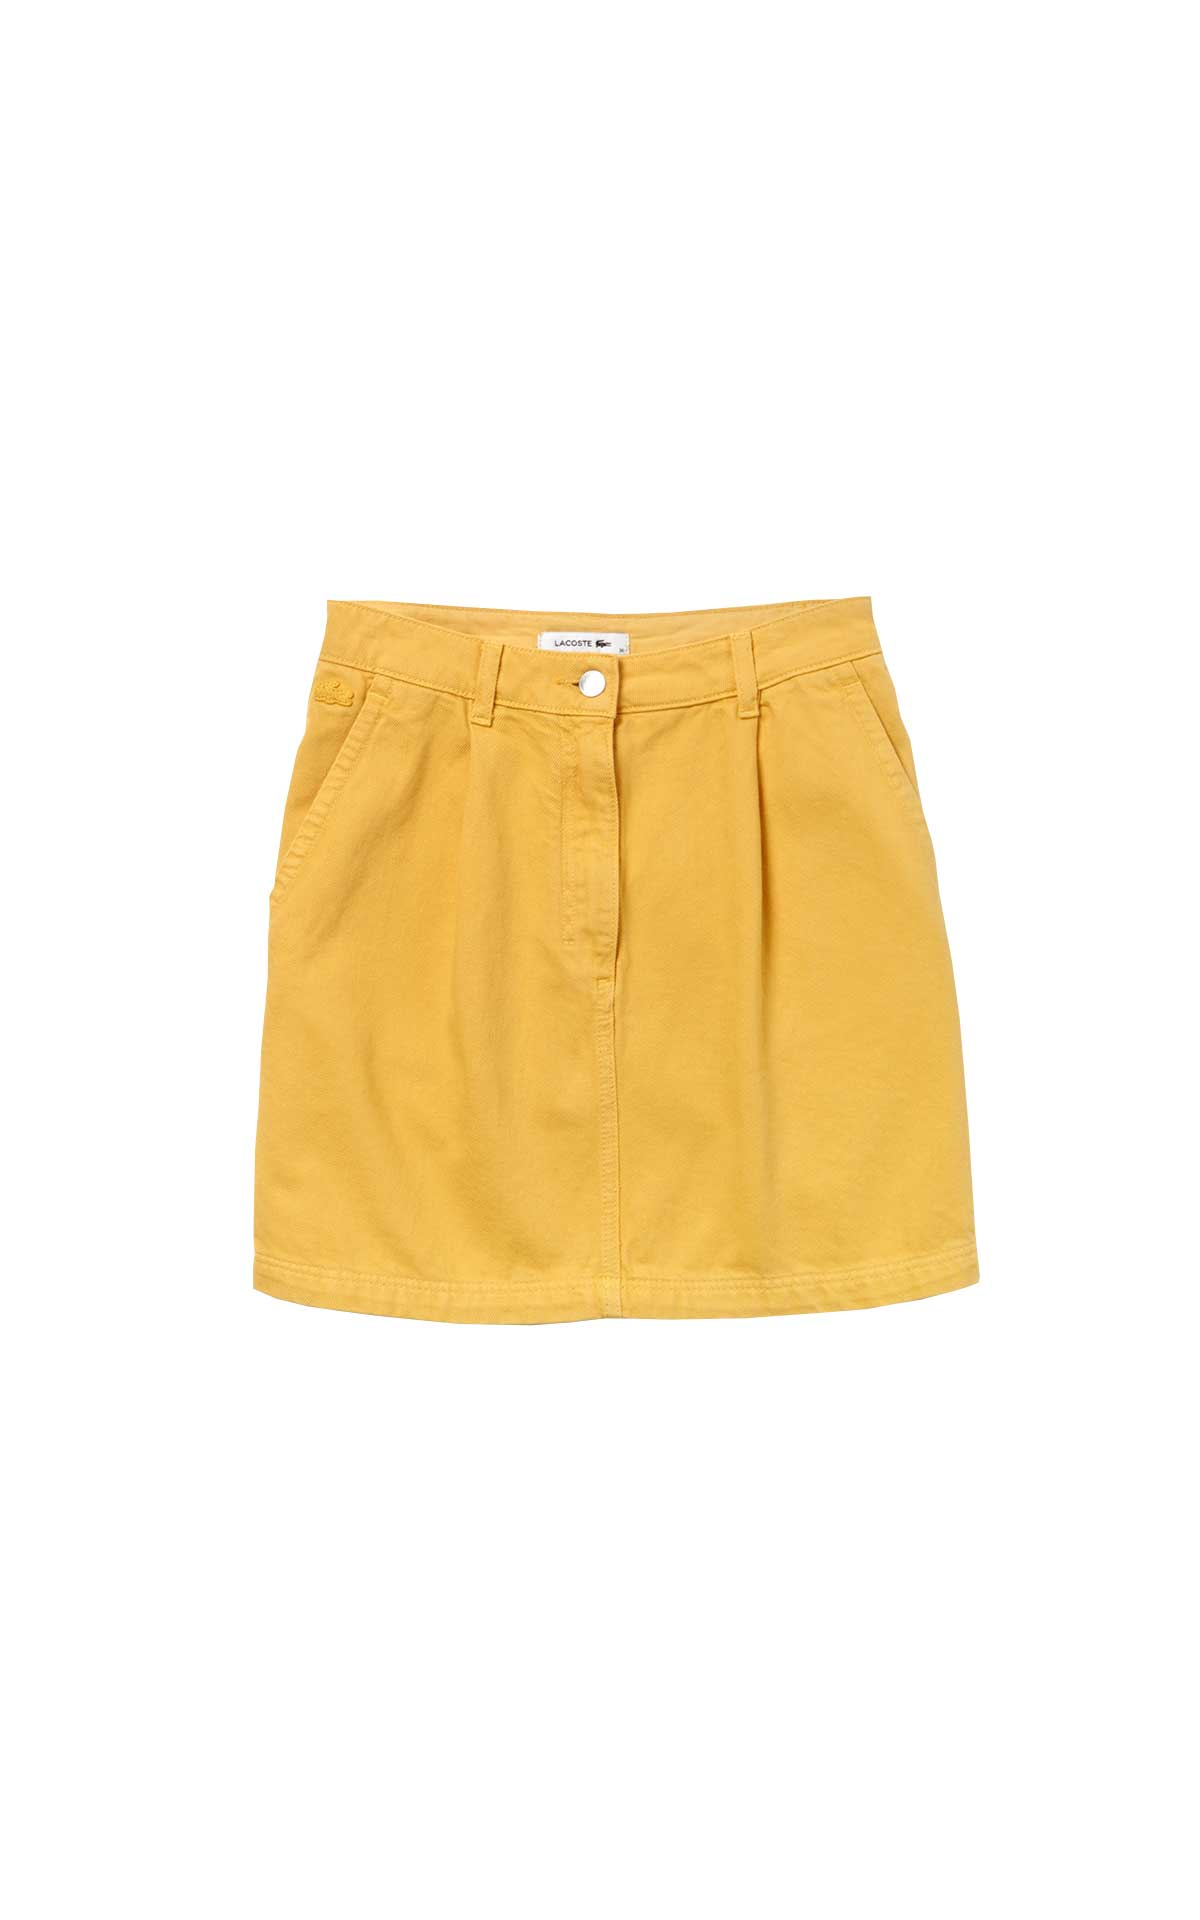 Short yellow denim skirt for woman Lacoste